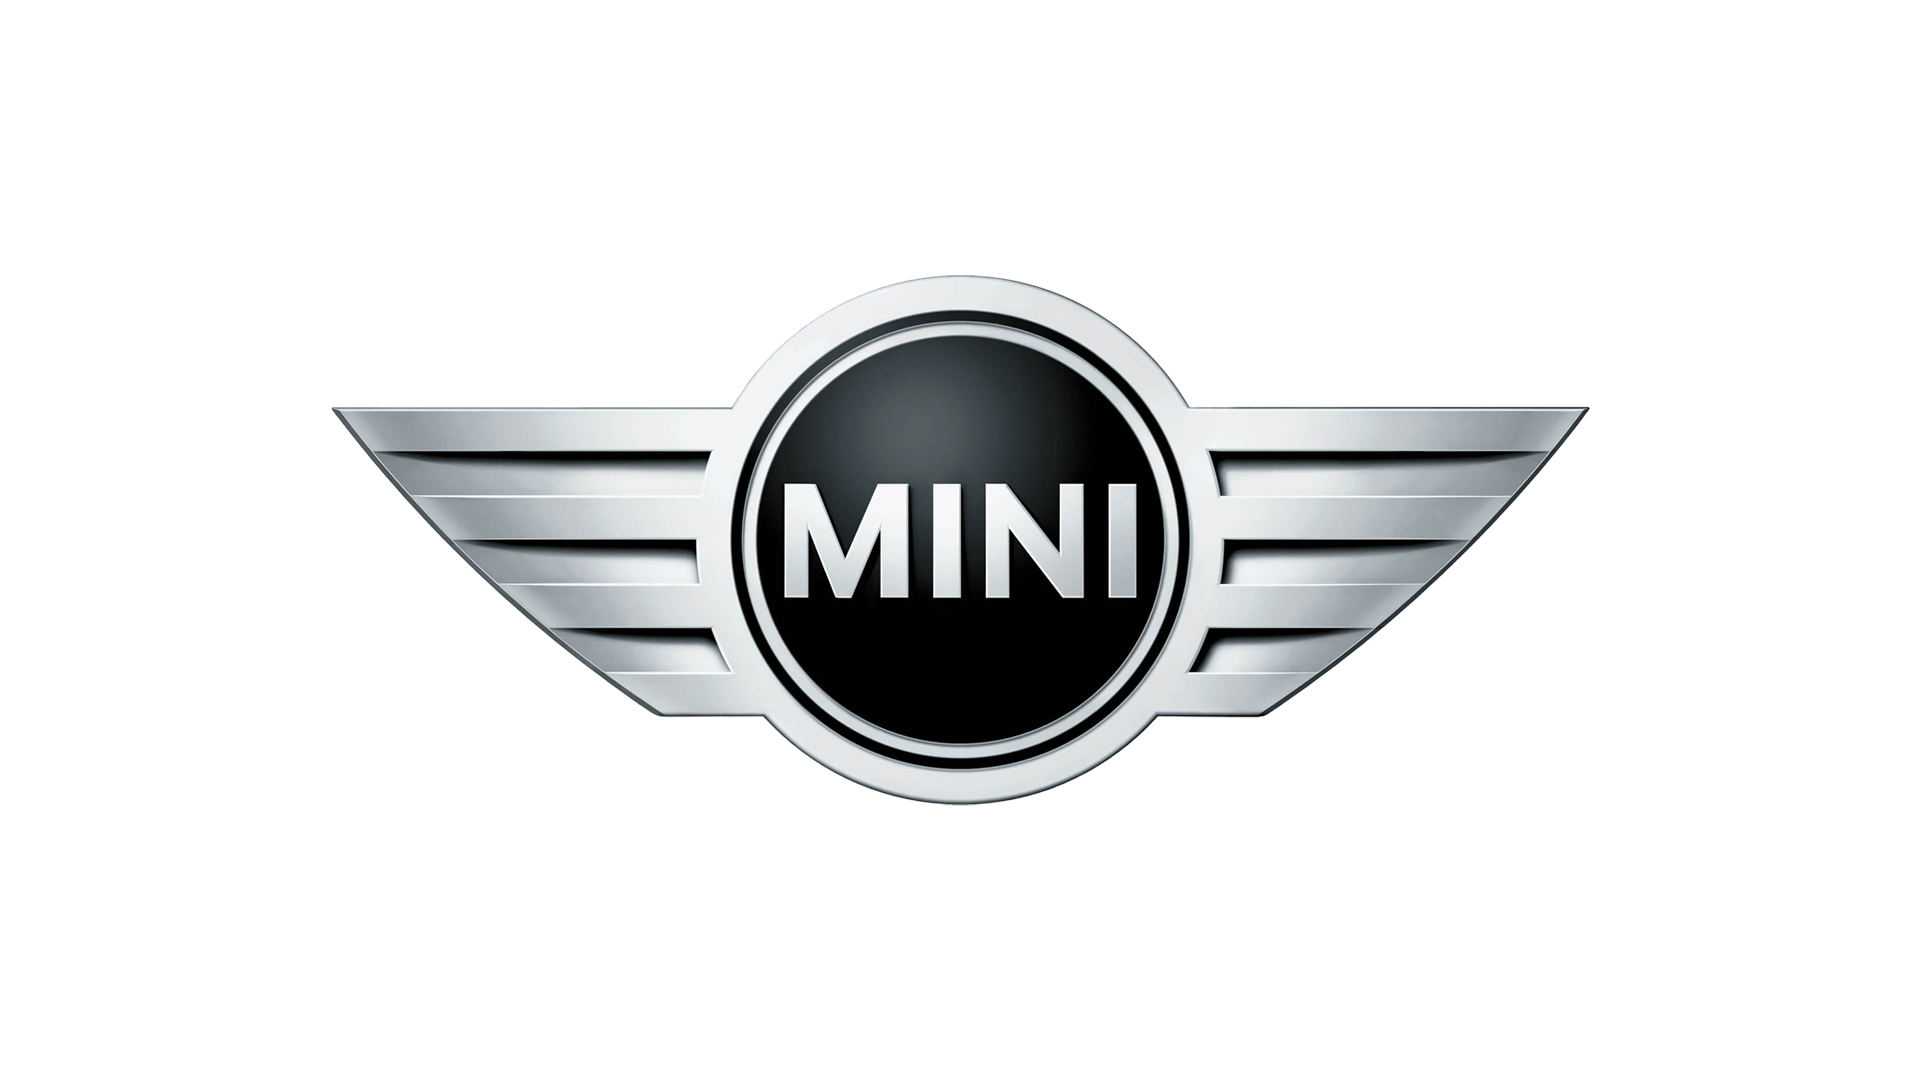 Mini Logo Hd Png Meaning Information Carlogos Org